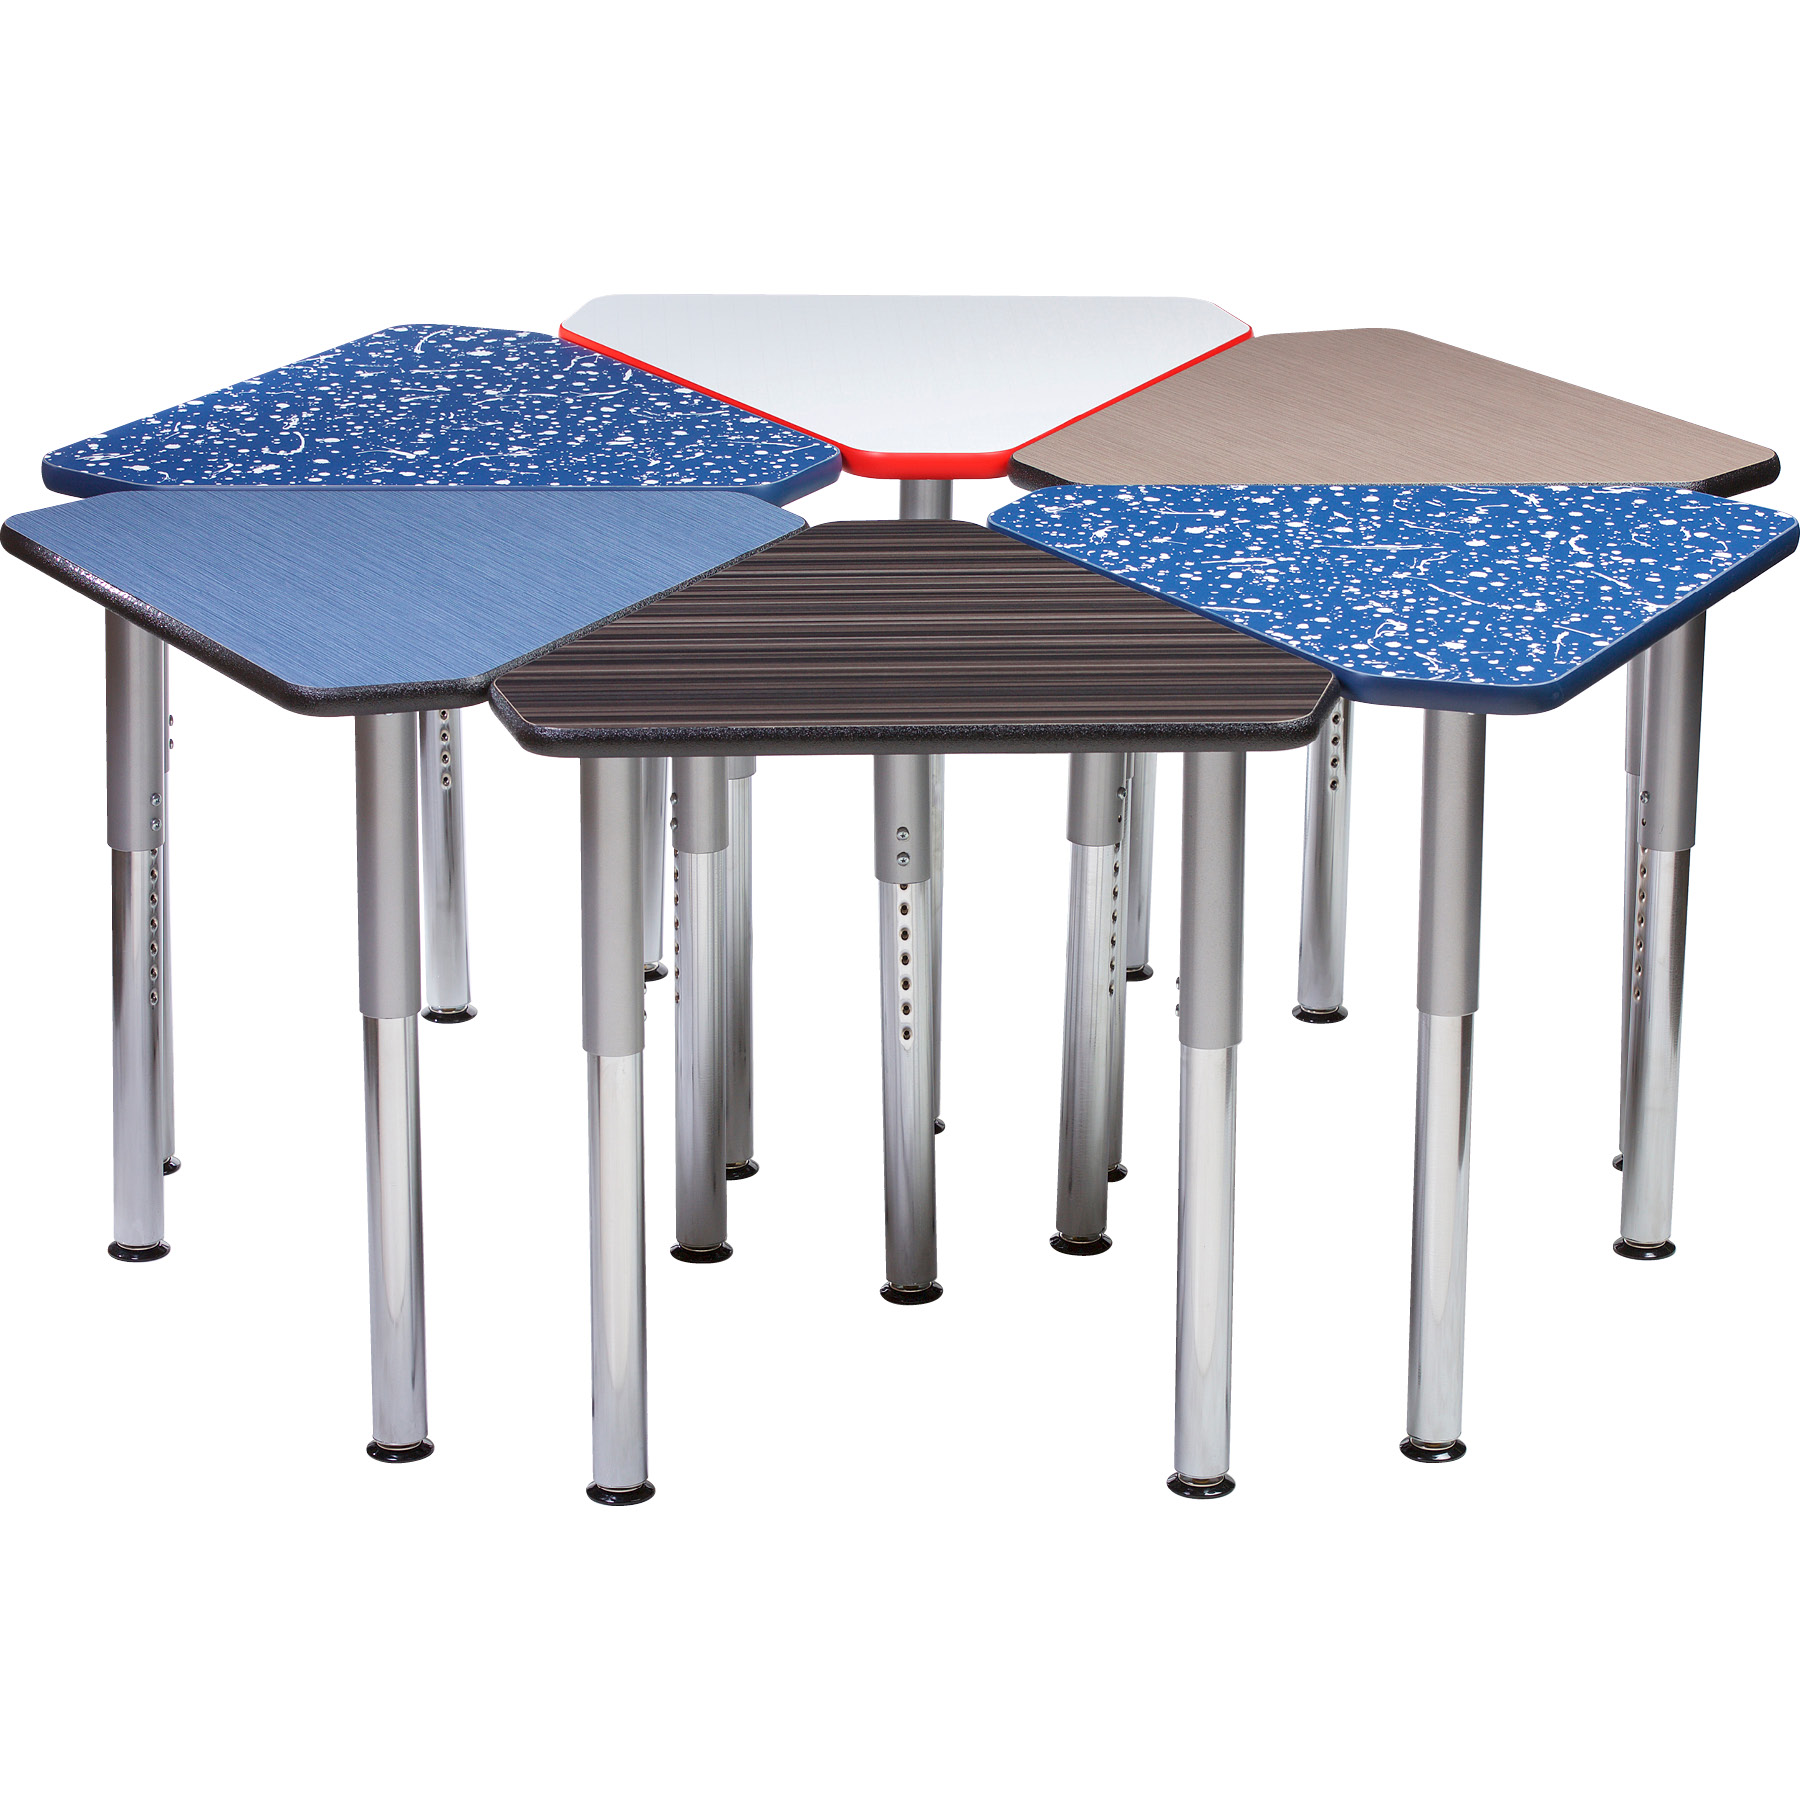 6450 Puzzle Diamond Hexagon tables with Galaxy legs